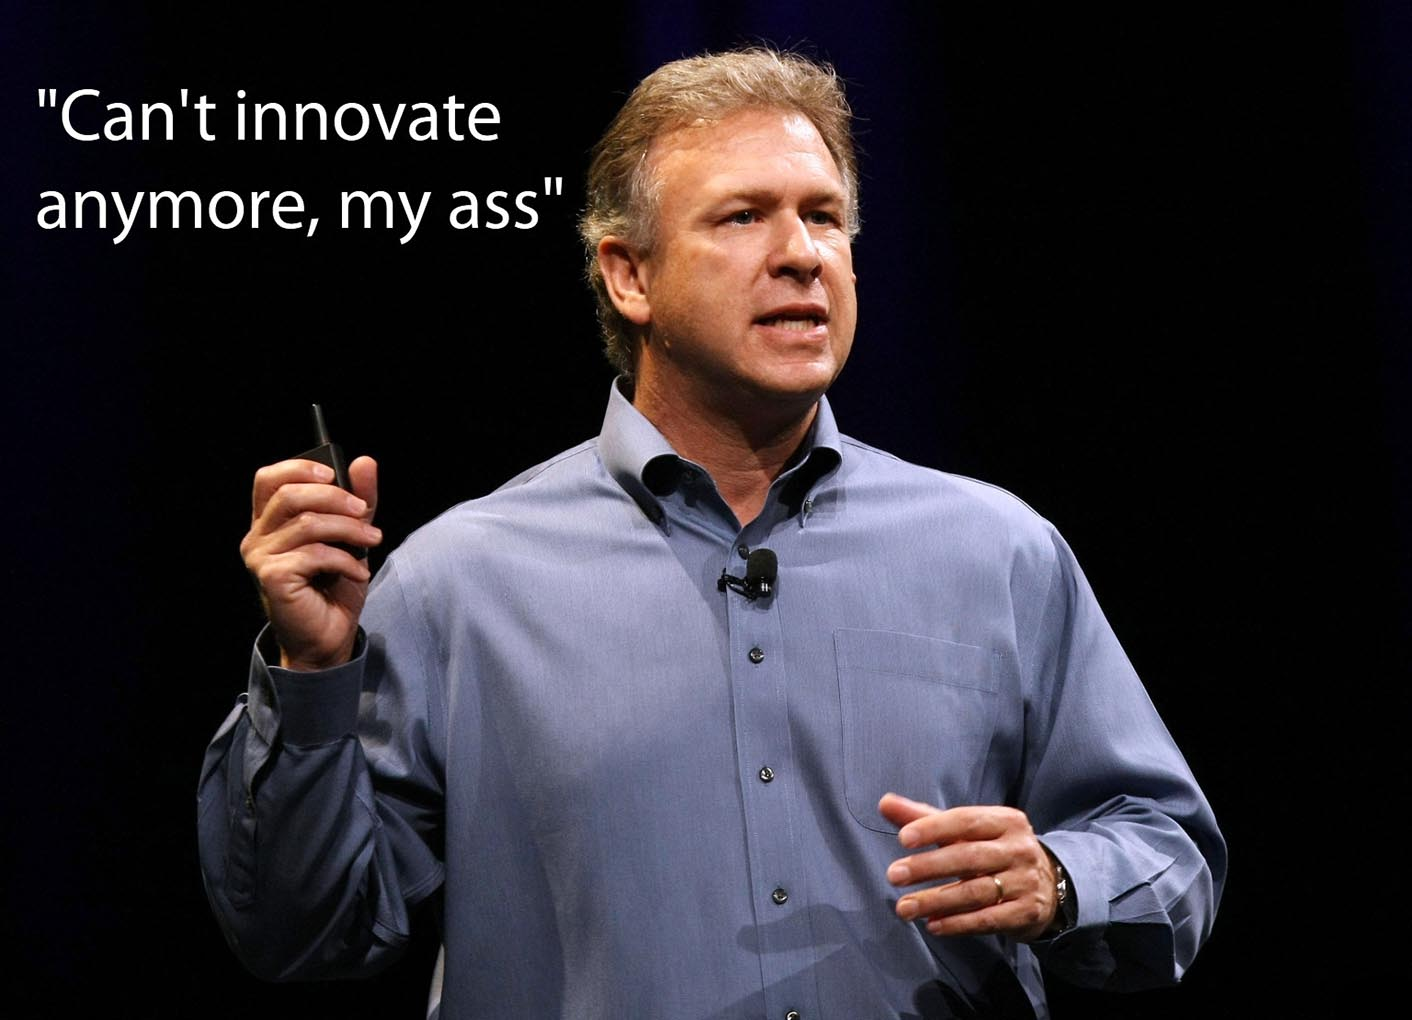 Phil Schiller can't innovate anymore my ass